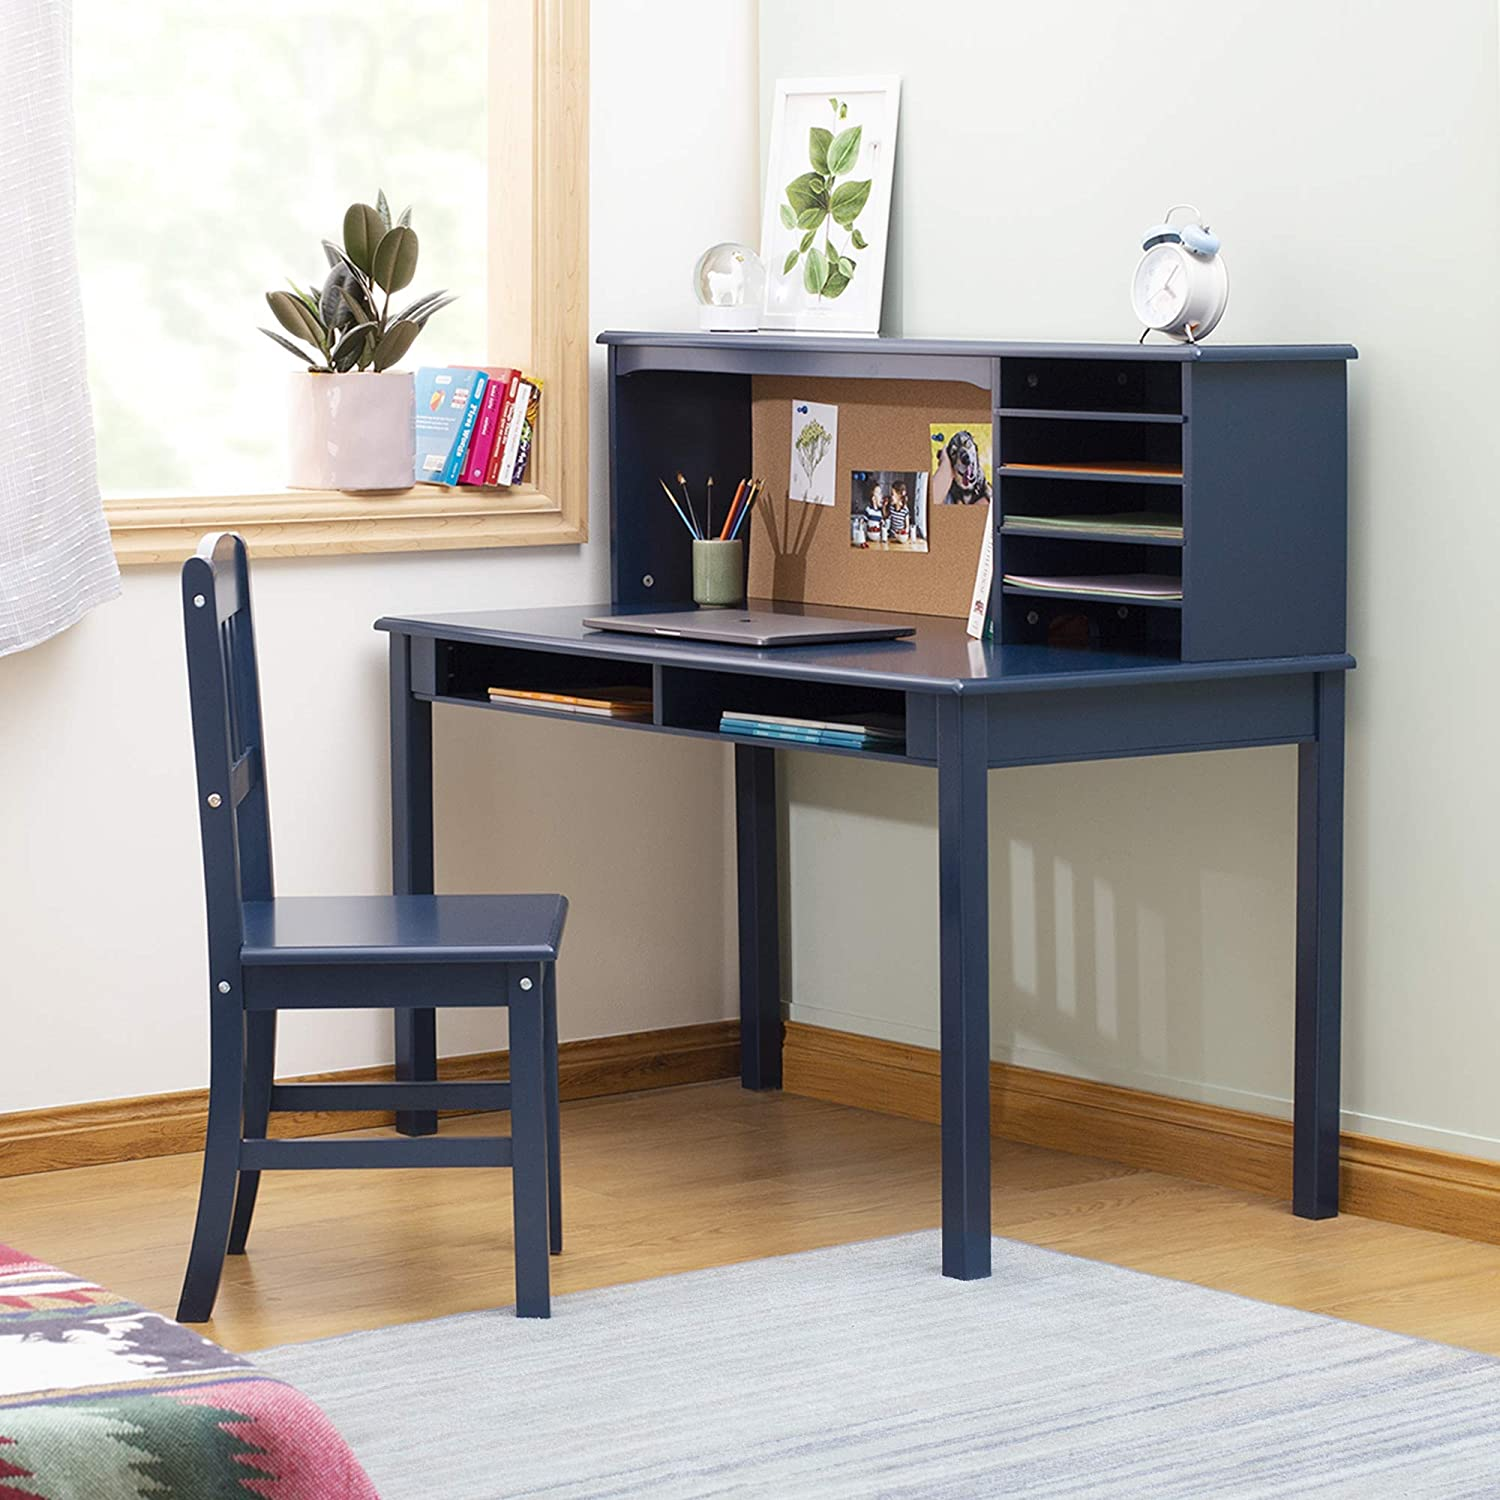 Amazon Com Guidecraft Children S Media Desk And Chair Set Navy Student S Study Computer And Writing Workstation With Hutch And Shelves Wooden Kids Bedroom Furniture Furniture Decor